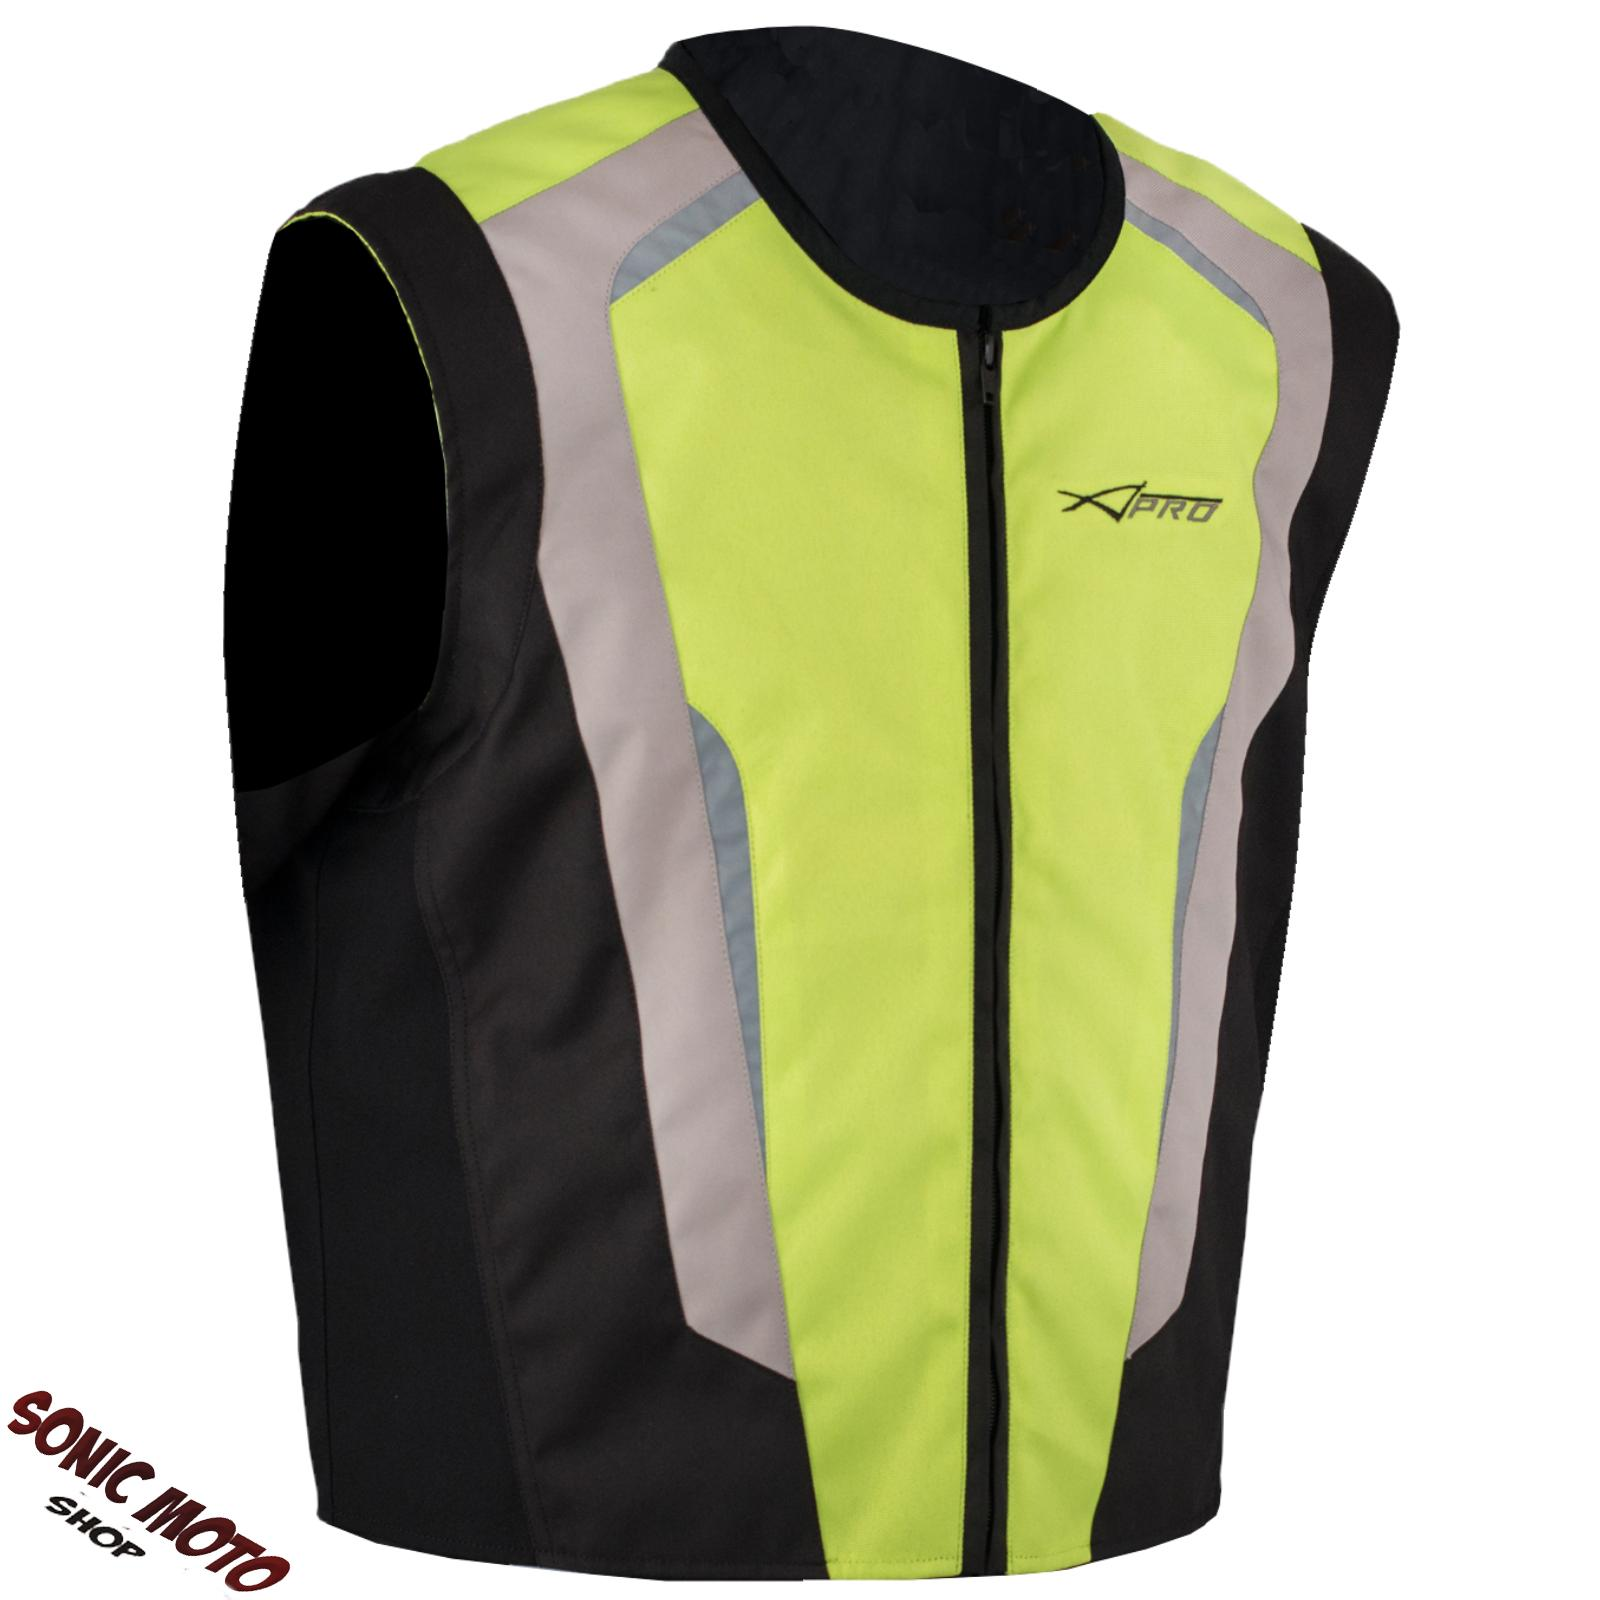 gilet alta visibilit cartarinfrangnete fluo sicurezza moto auto bici fluo ebay. Black Bedroom Furniture Sets. Home Design Ideas